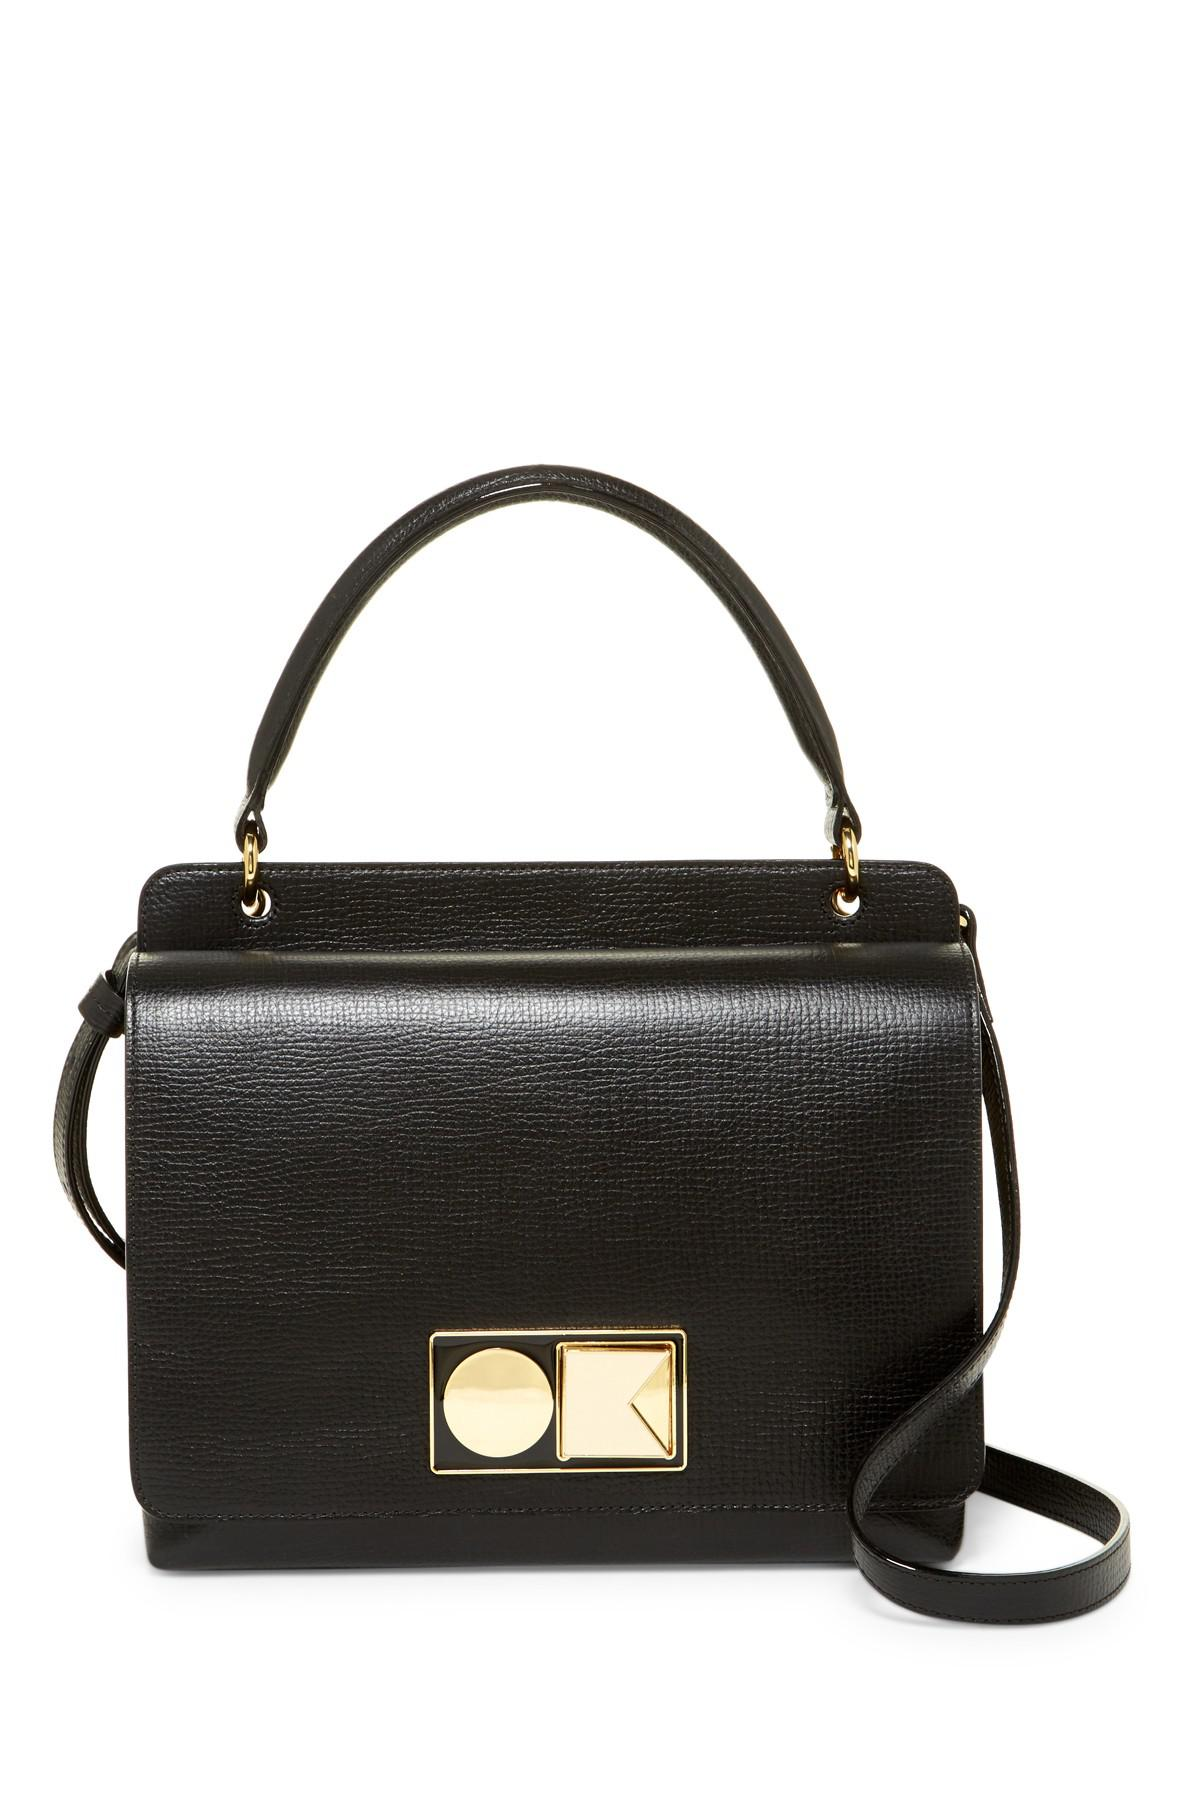 12fbdc5014 Orla Kiely Double Robin Leather Handbag in Black - Lyst